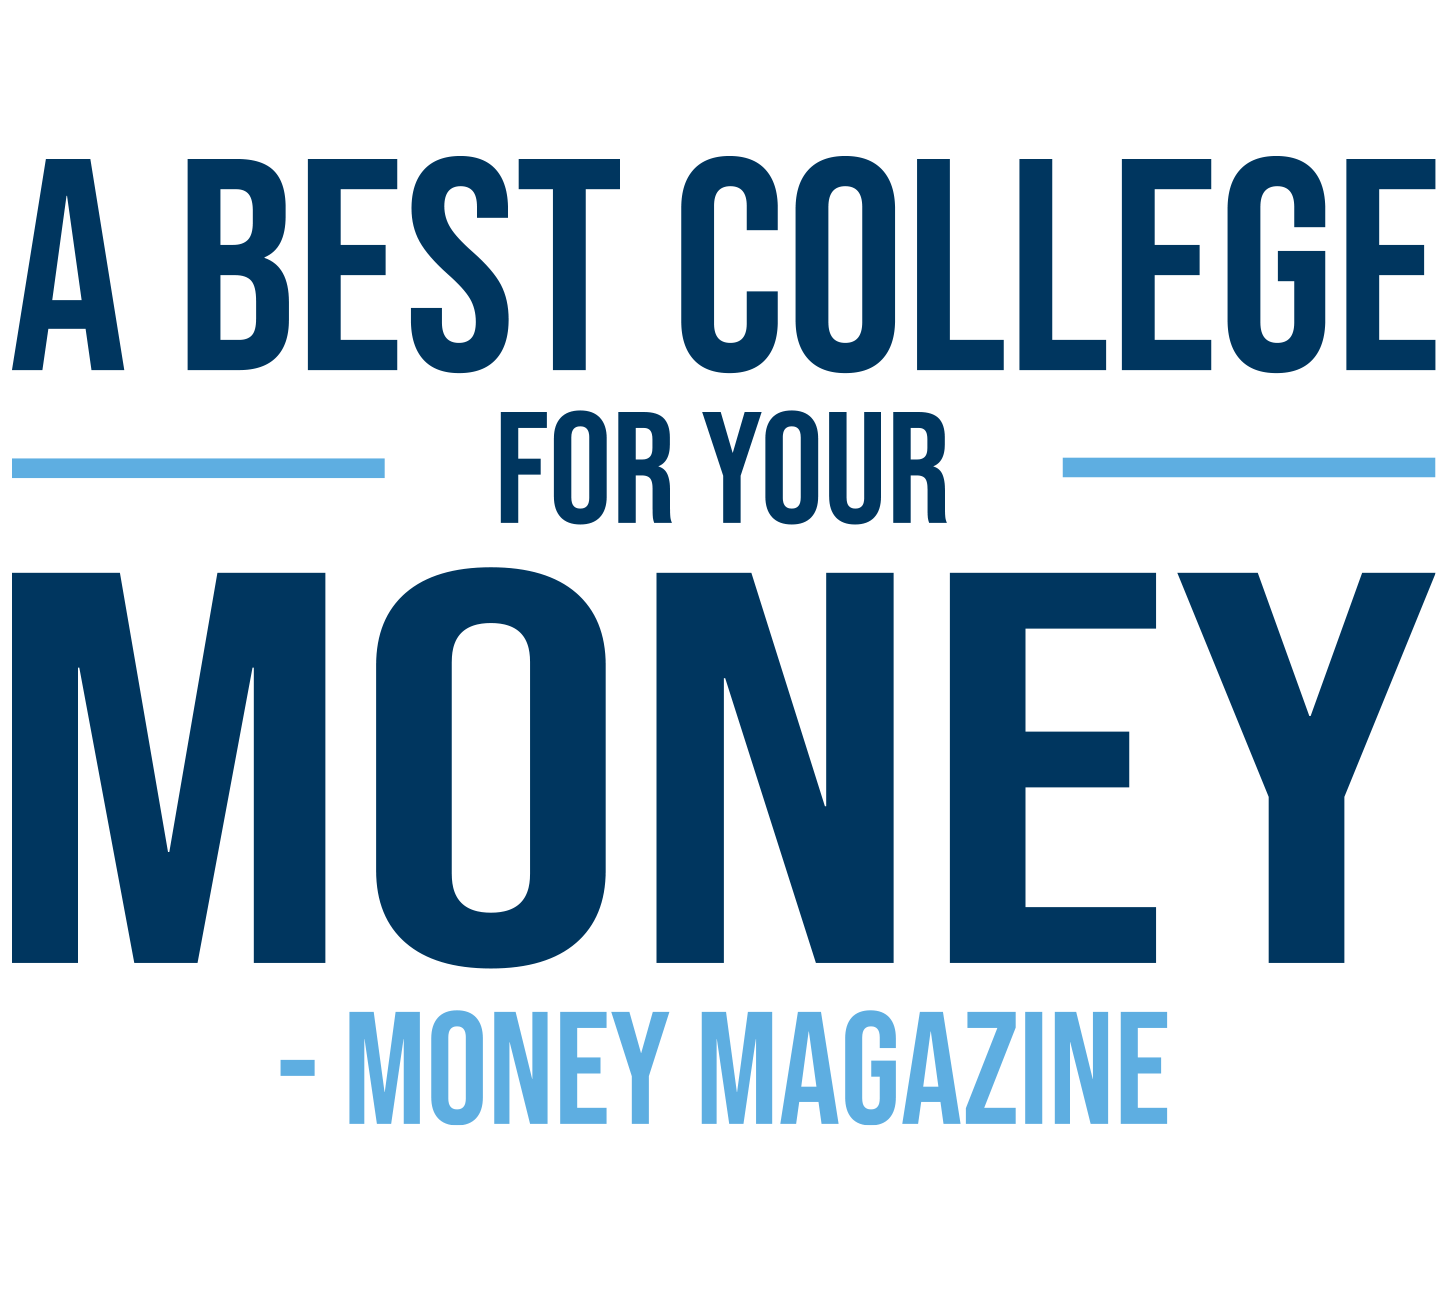 Money Magazine's Best College for Your Money.